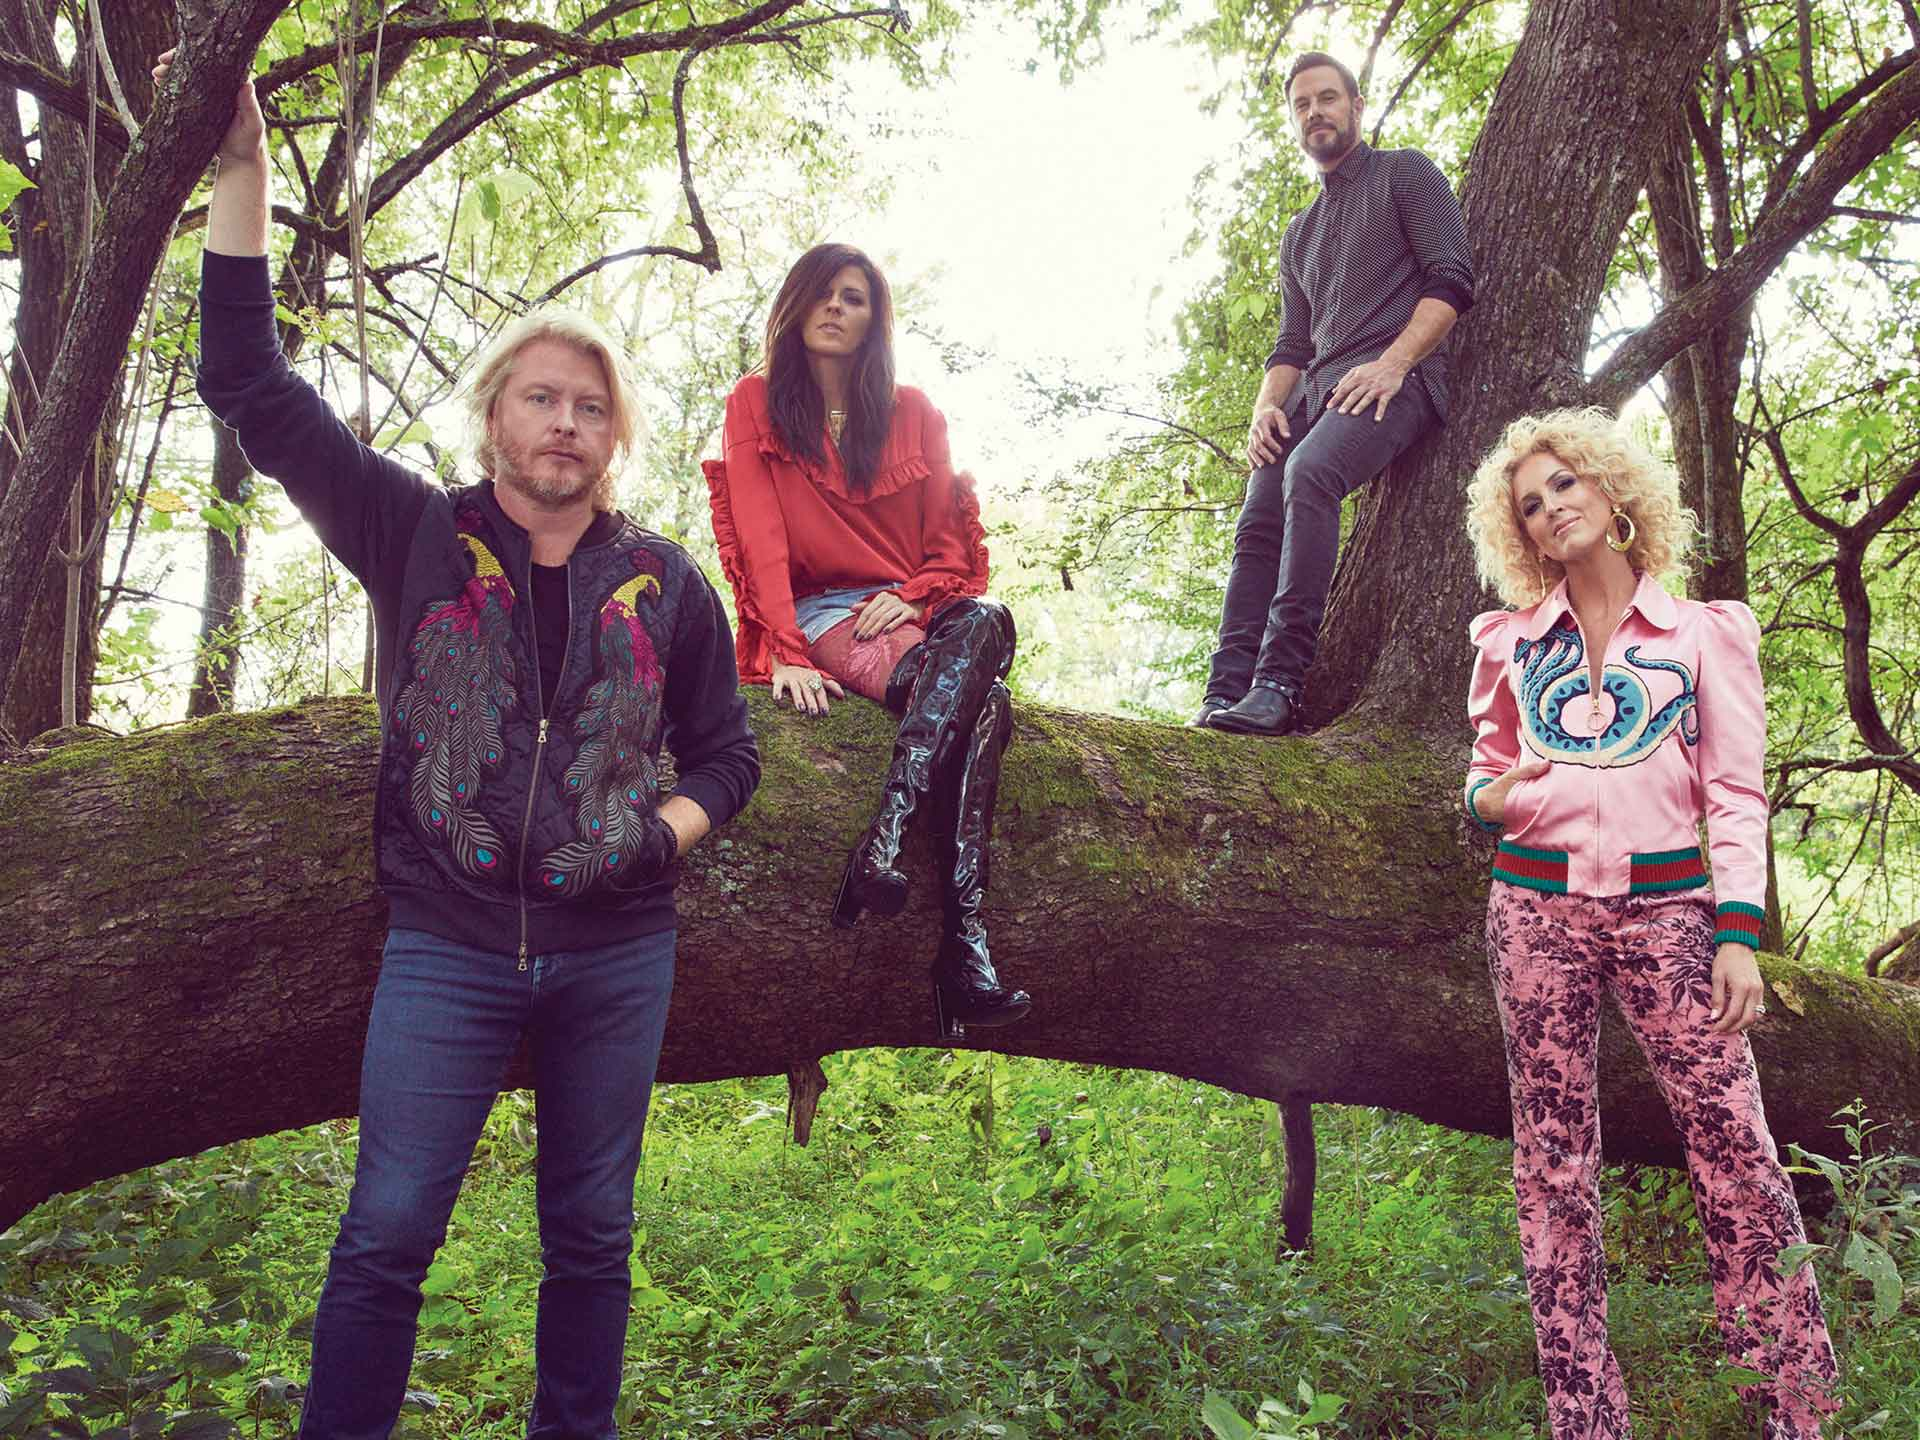 Image for LITTLE BIG TOWN wsg GAVIN DEGRAW and Trent Harmon - Saturday, July 7, 2018 (OUTDOORS)